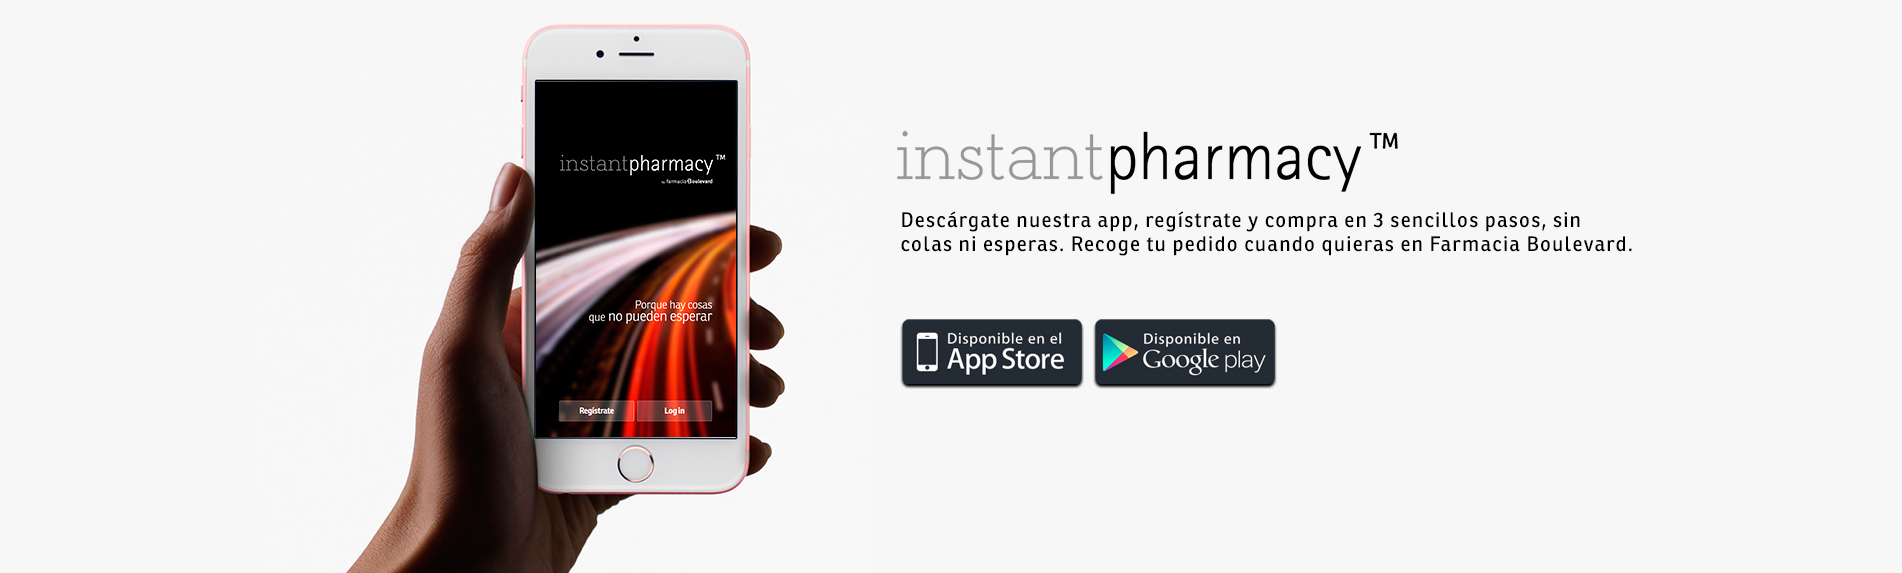 Slide_web_instantpharmacy